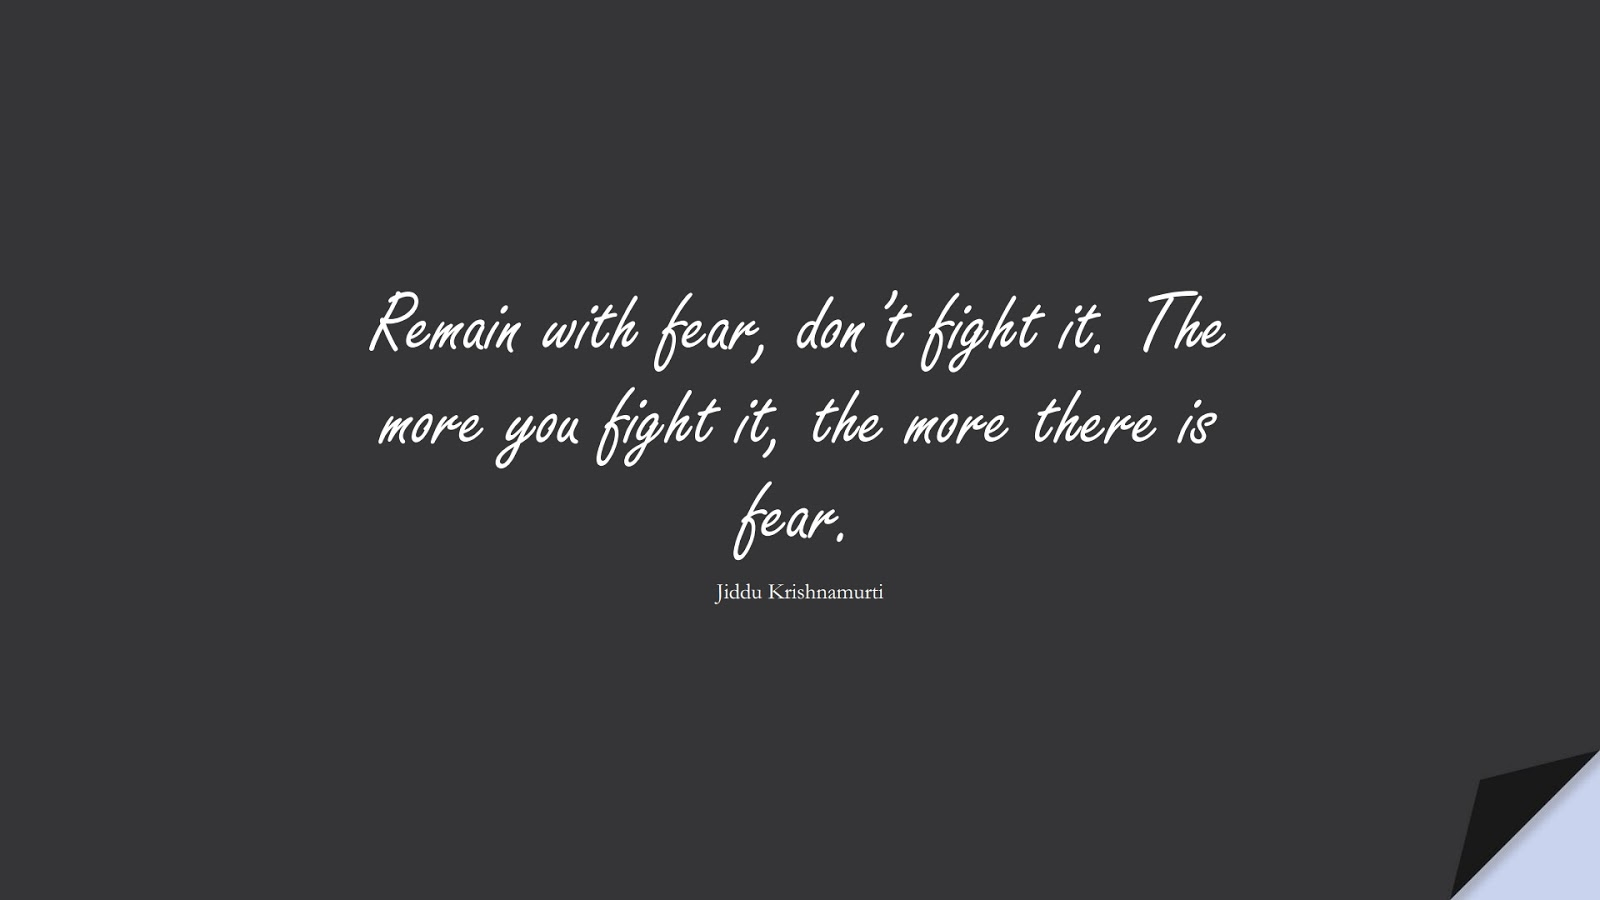 Remain with fear, don't fight it. The more you fight it, the more there is fear. (Jiddu Krishnamurti);  #AnxietyQuotes